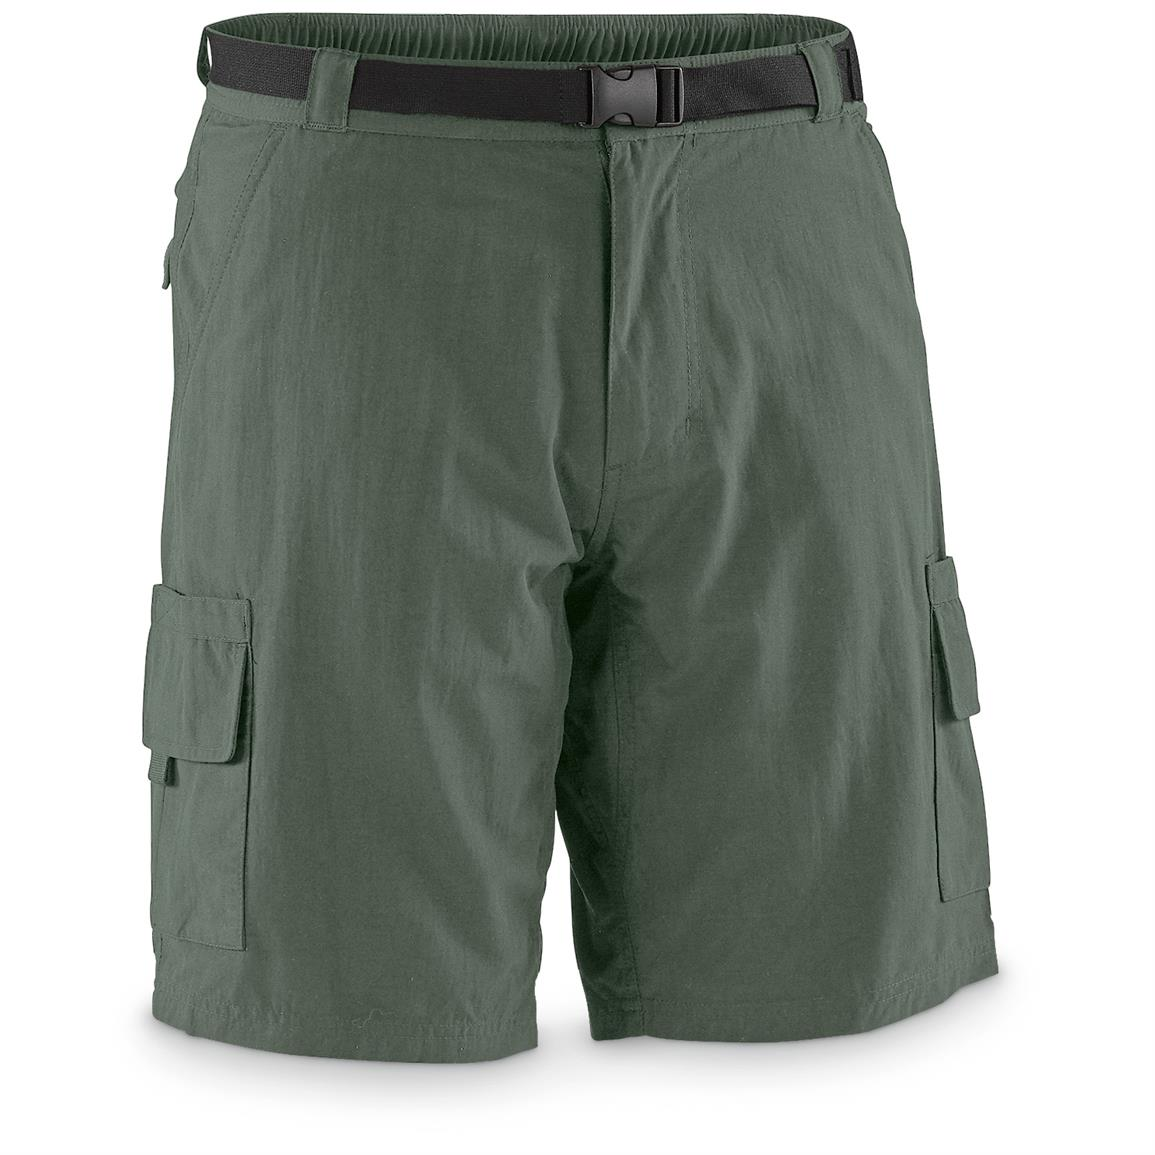 "Guide Gear Men's Cargo River Shorts, 10"" Inseam, Sage"